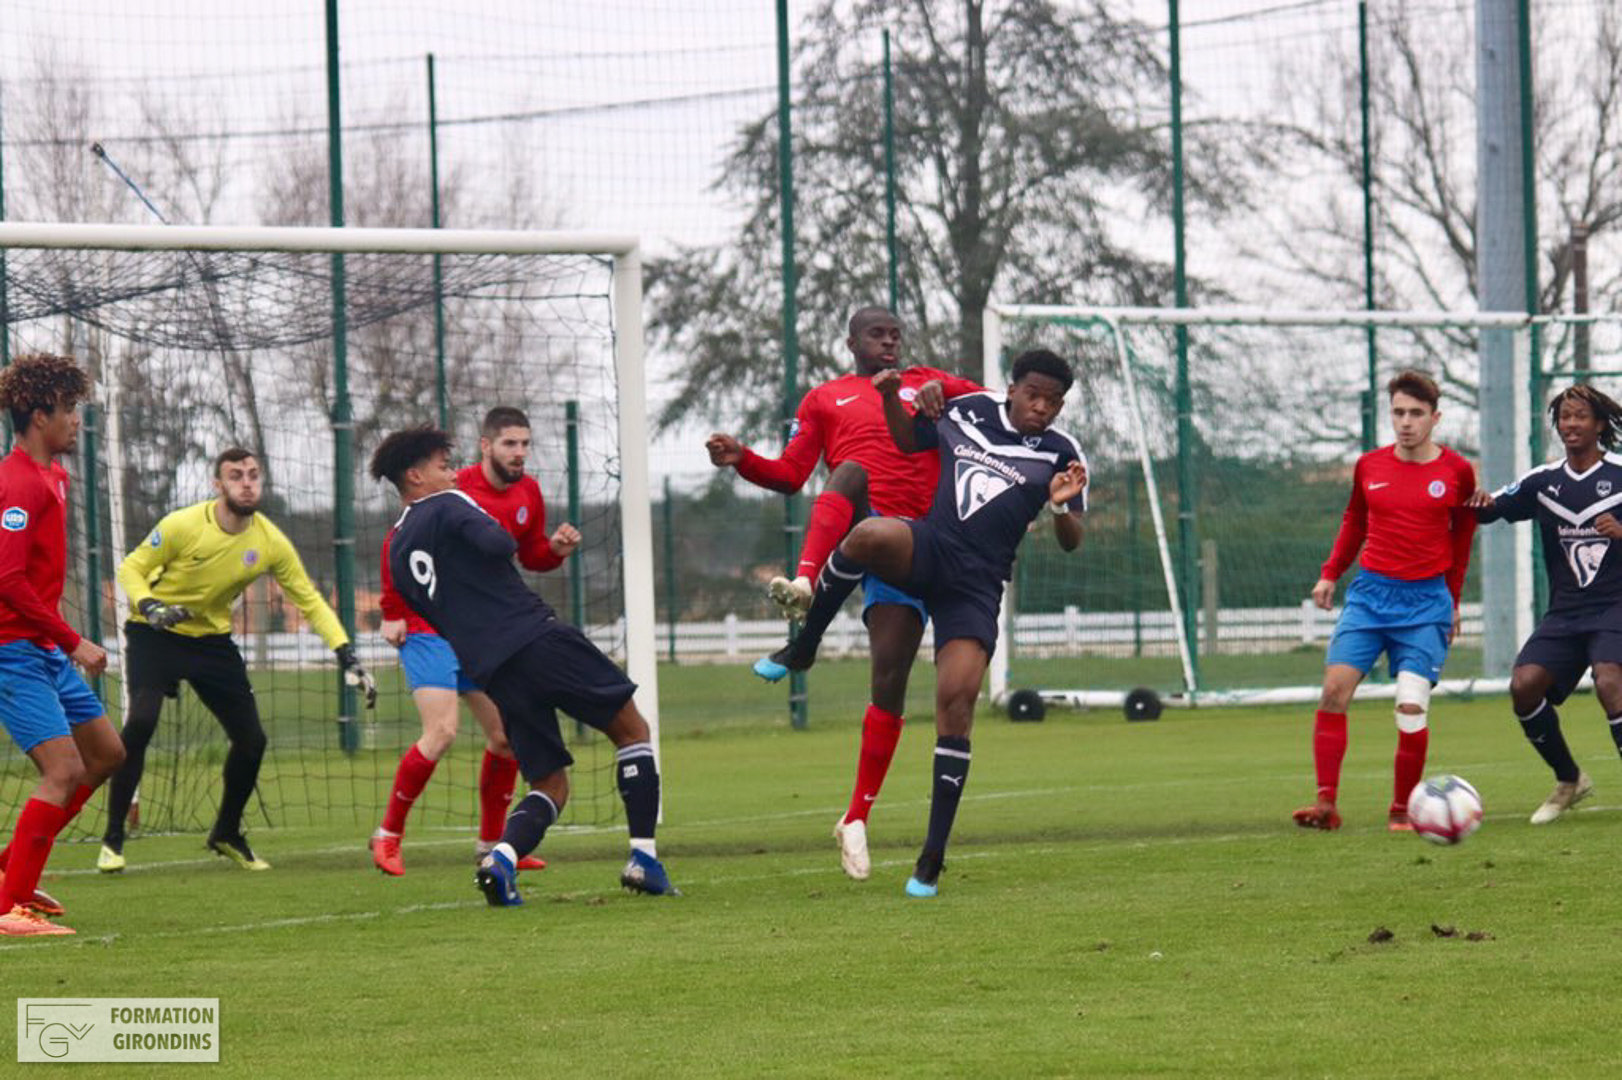 Cfa Girondins : Les Girondins s'inclinent à domicile - Formation Girondins